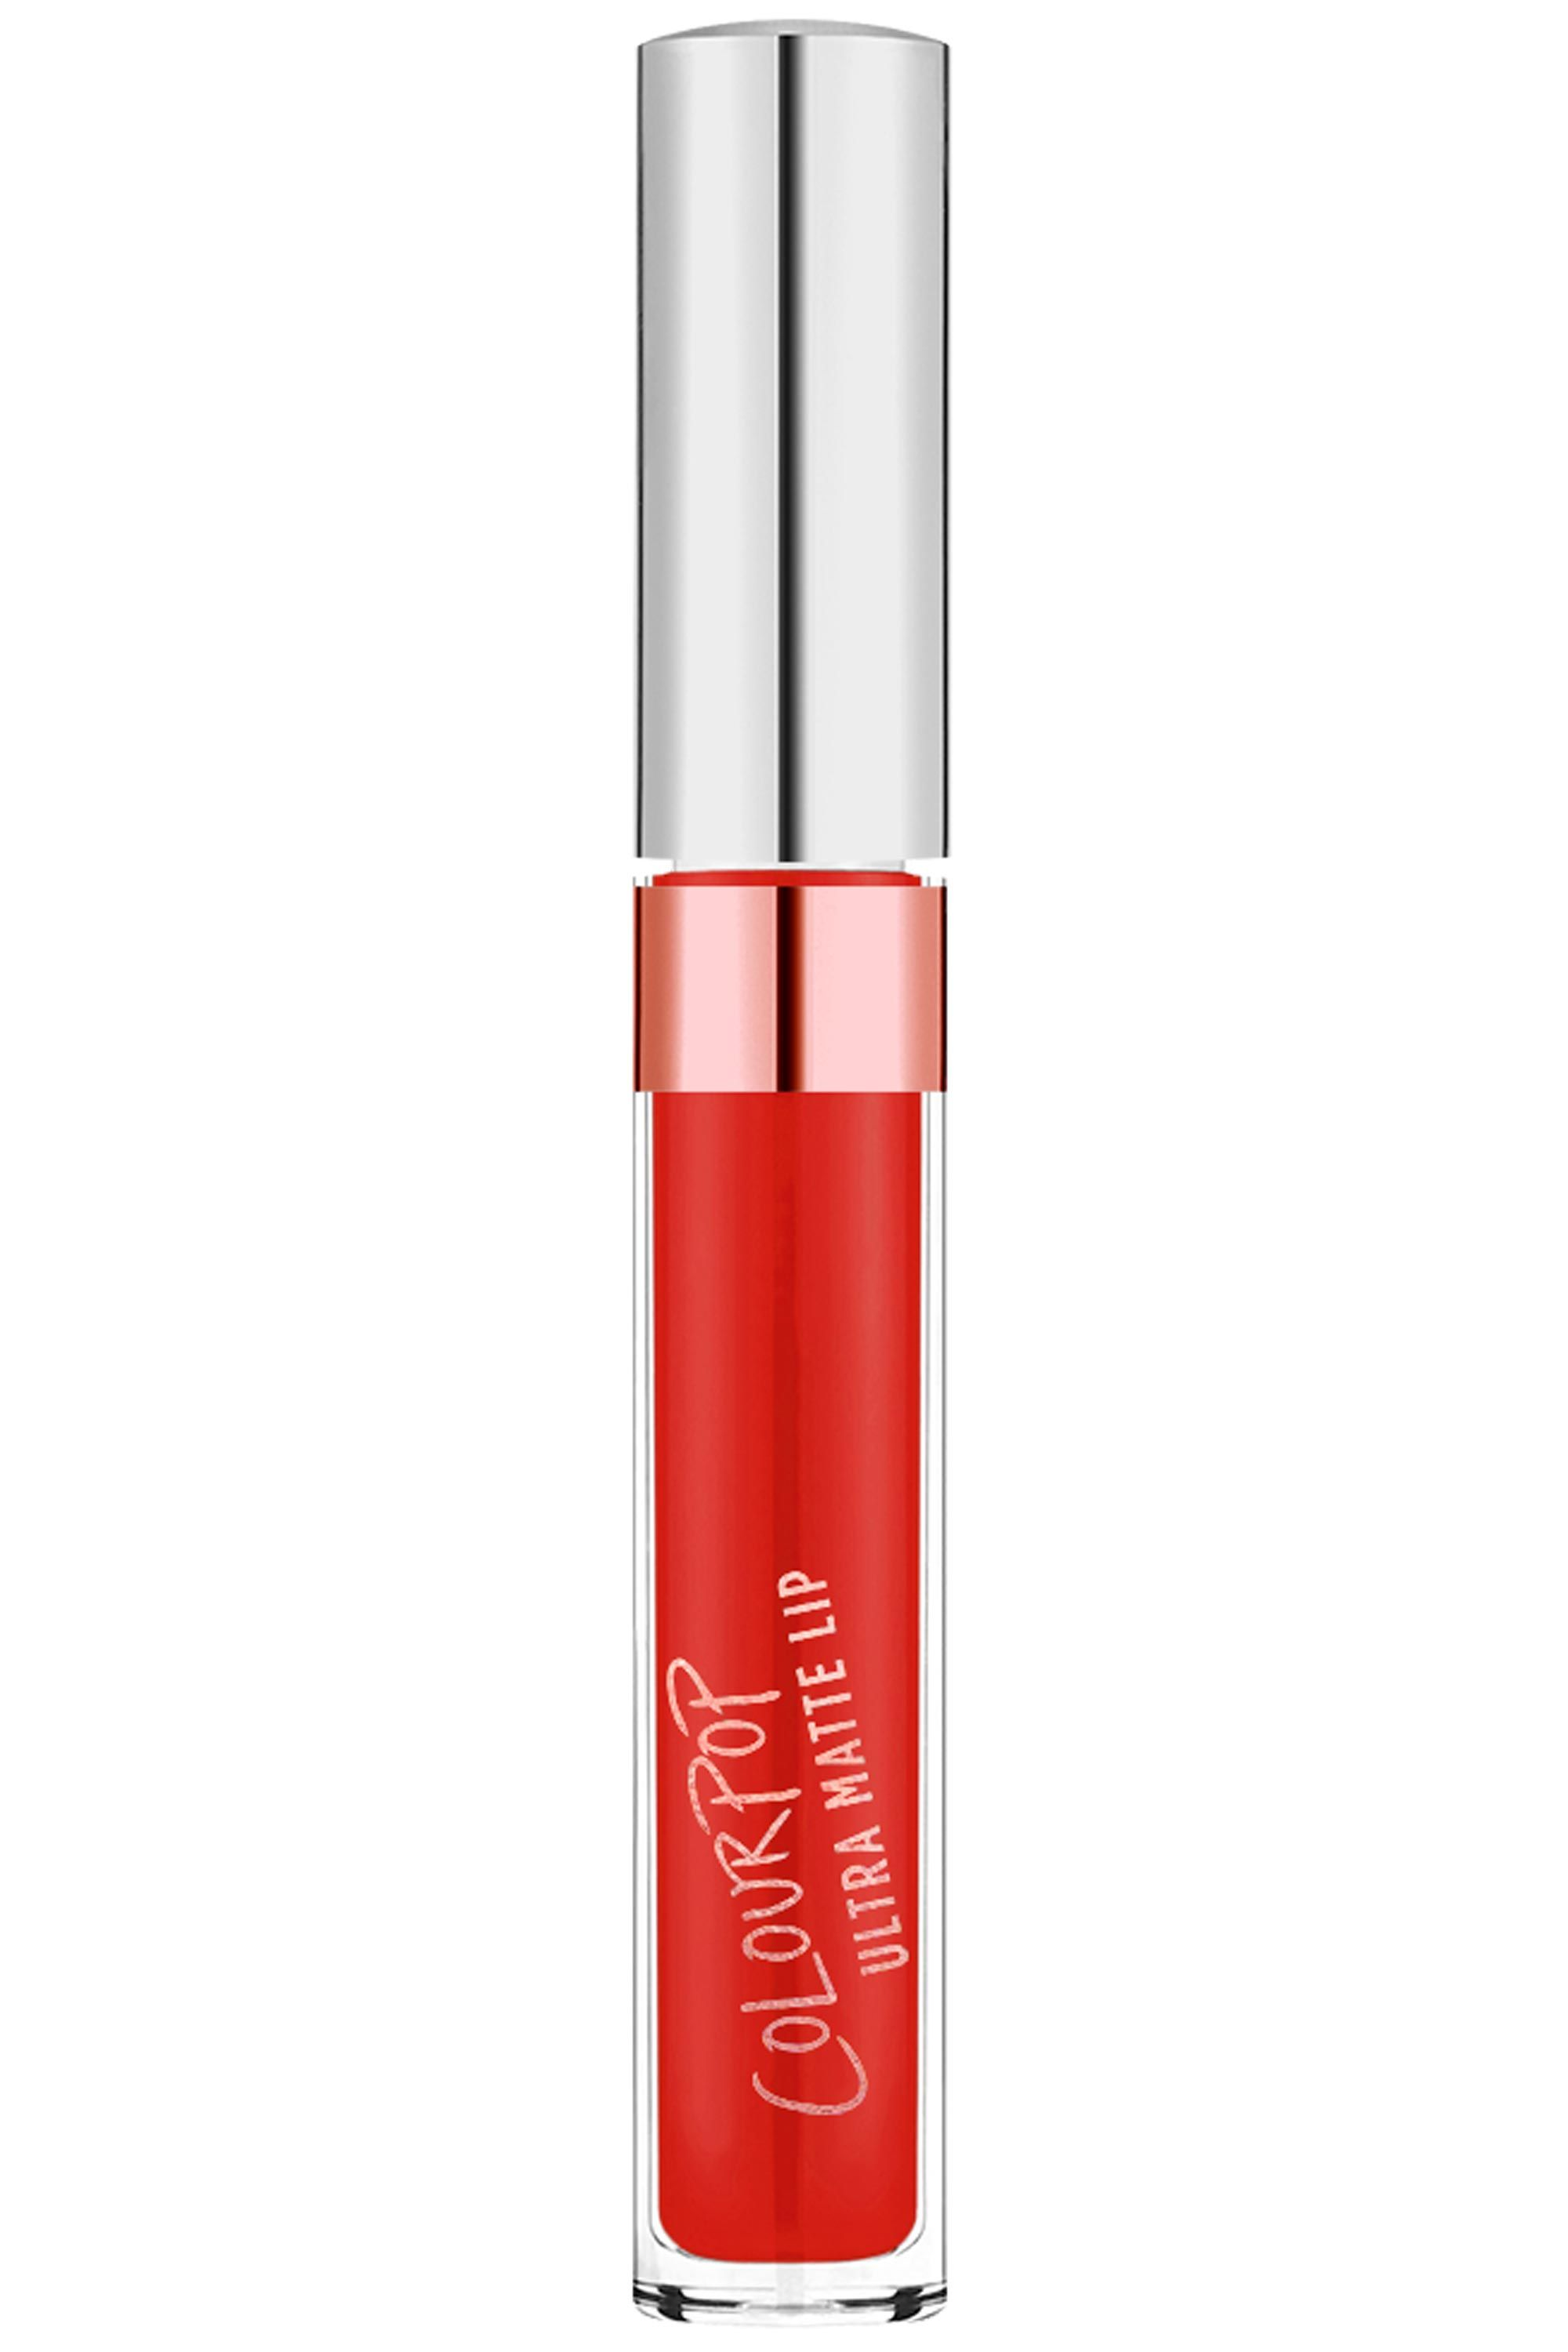 Colour care london lipstick price - Colour Care London Lipstick Price 26